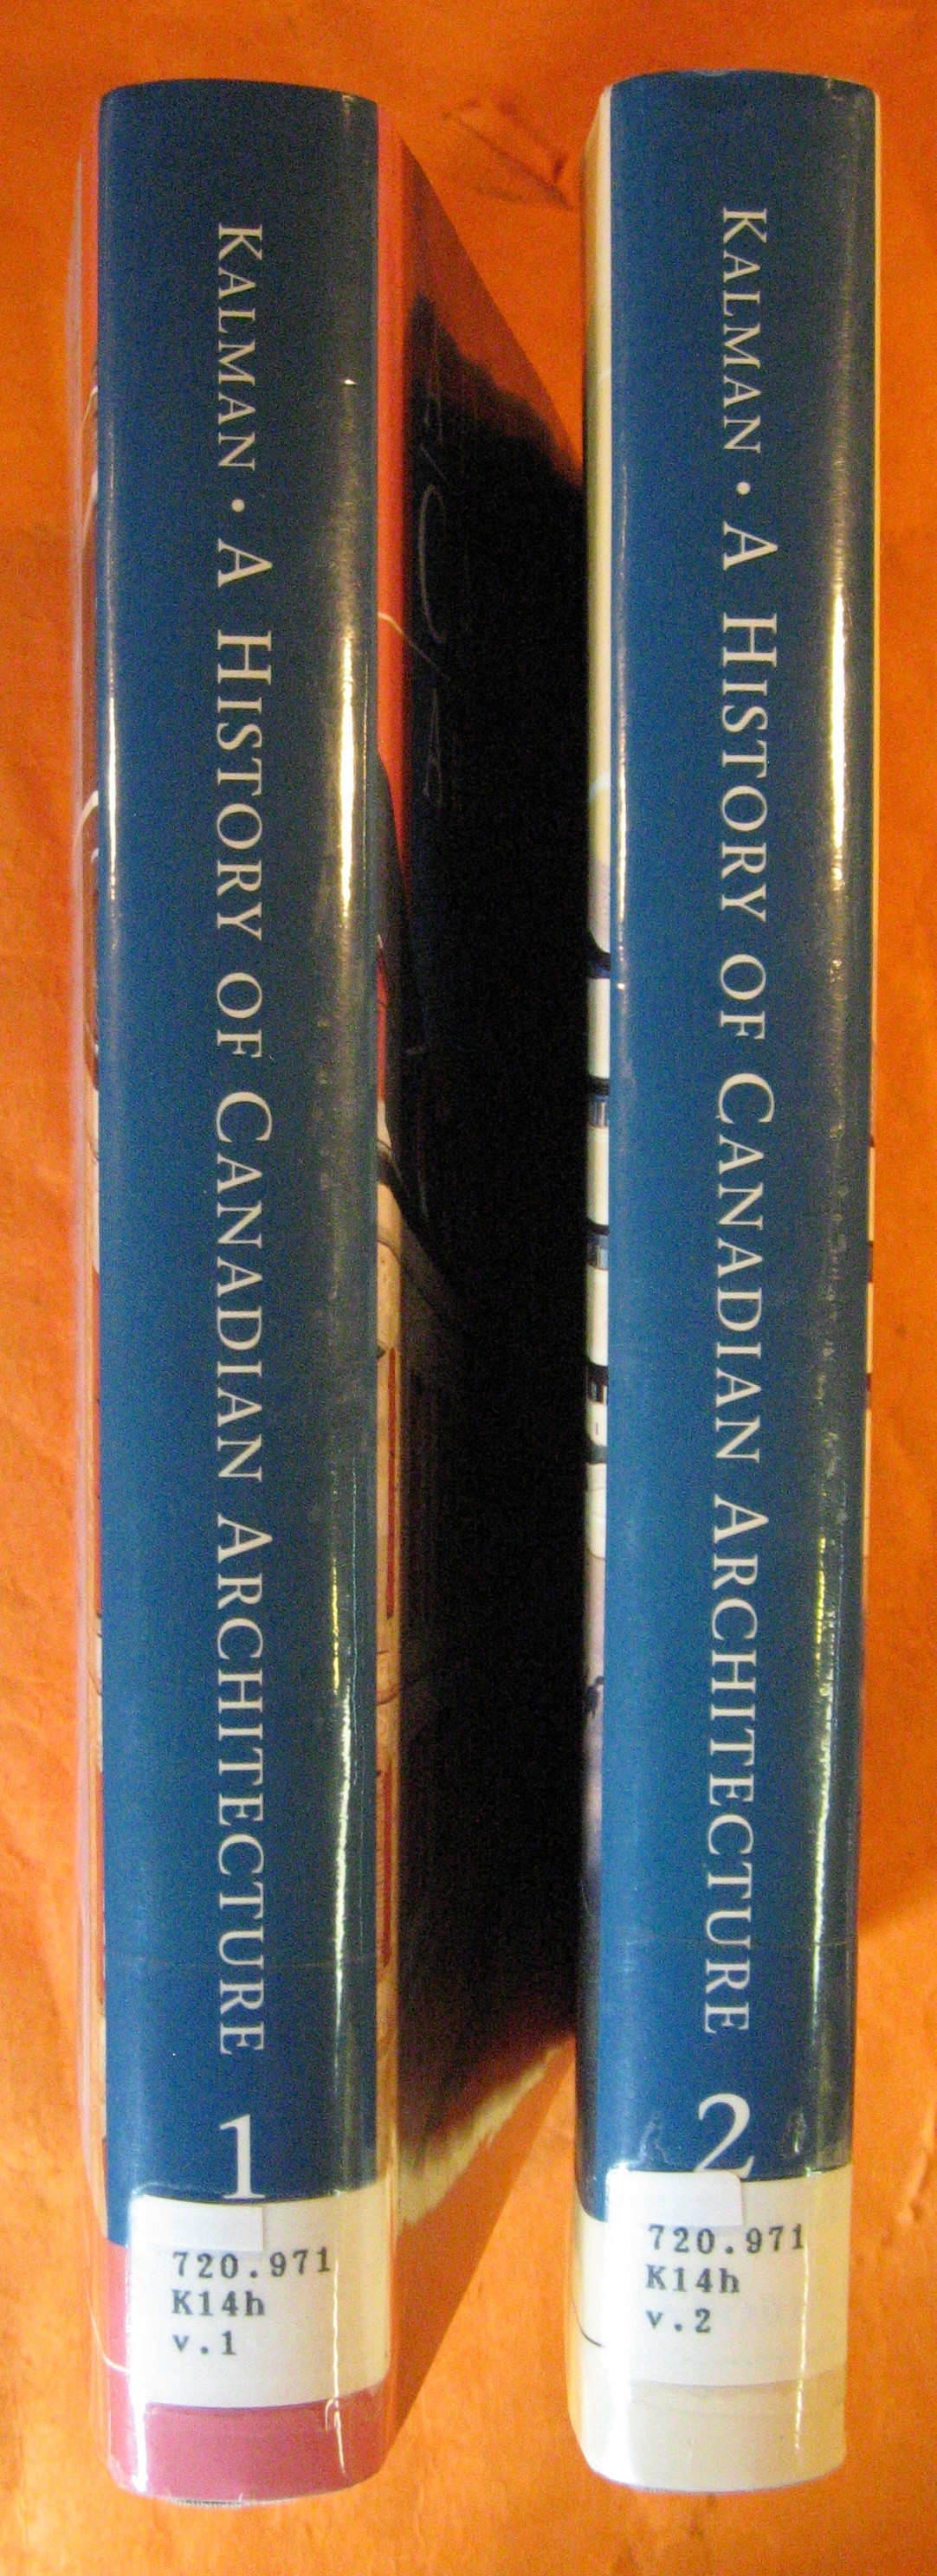 A History of Canadian Architecture: 2 Volume Set